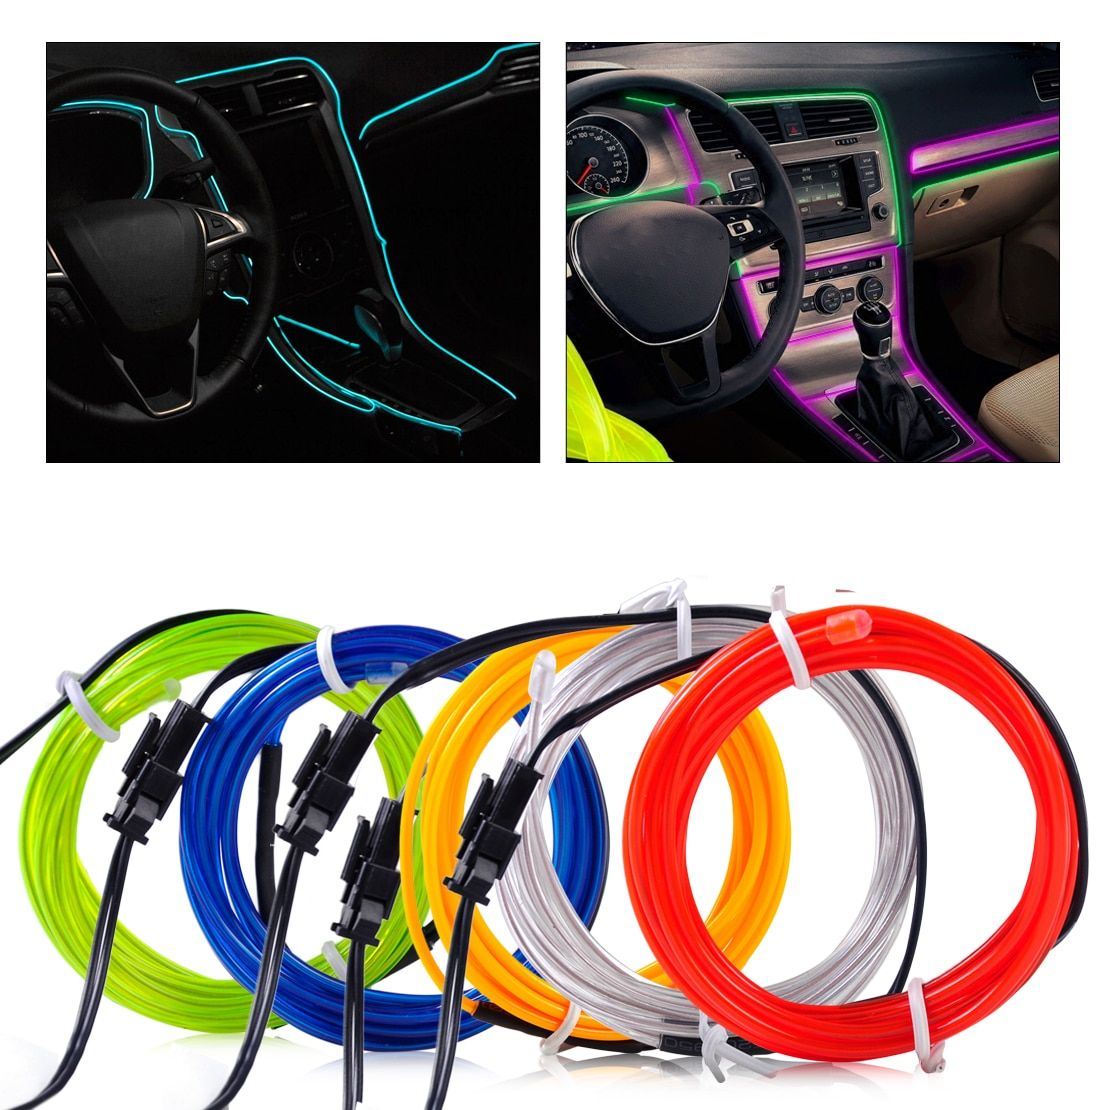 DWCX 3mm 2m EL-Wire Flexible Stylings Car Interior Decor Fluorescent Neon Light Strip Cold light Tape 12V DC Cigarette Lighter